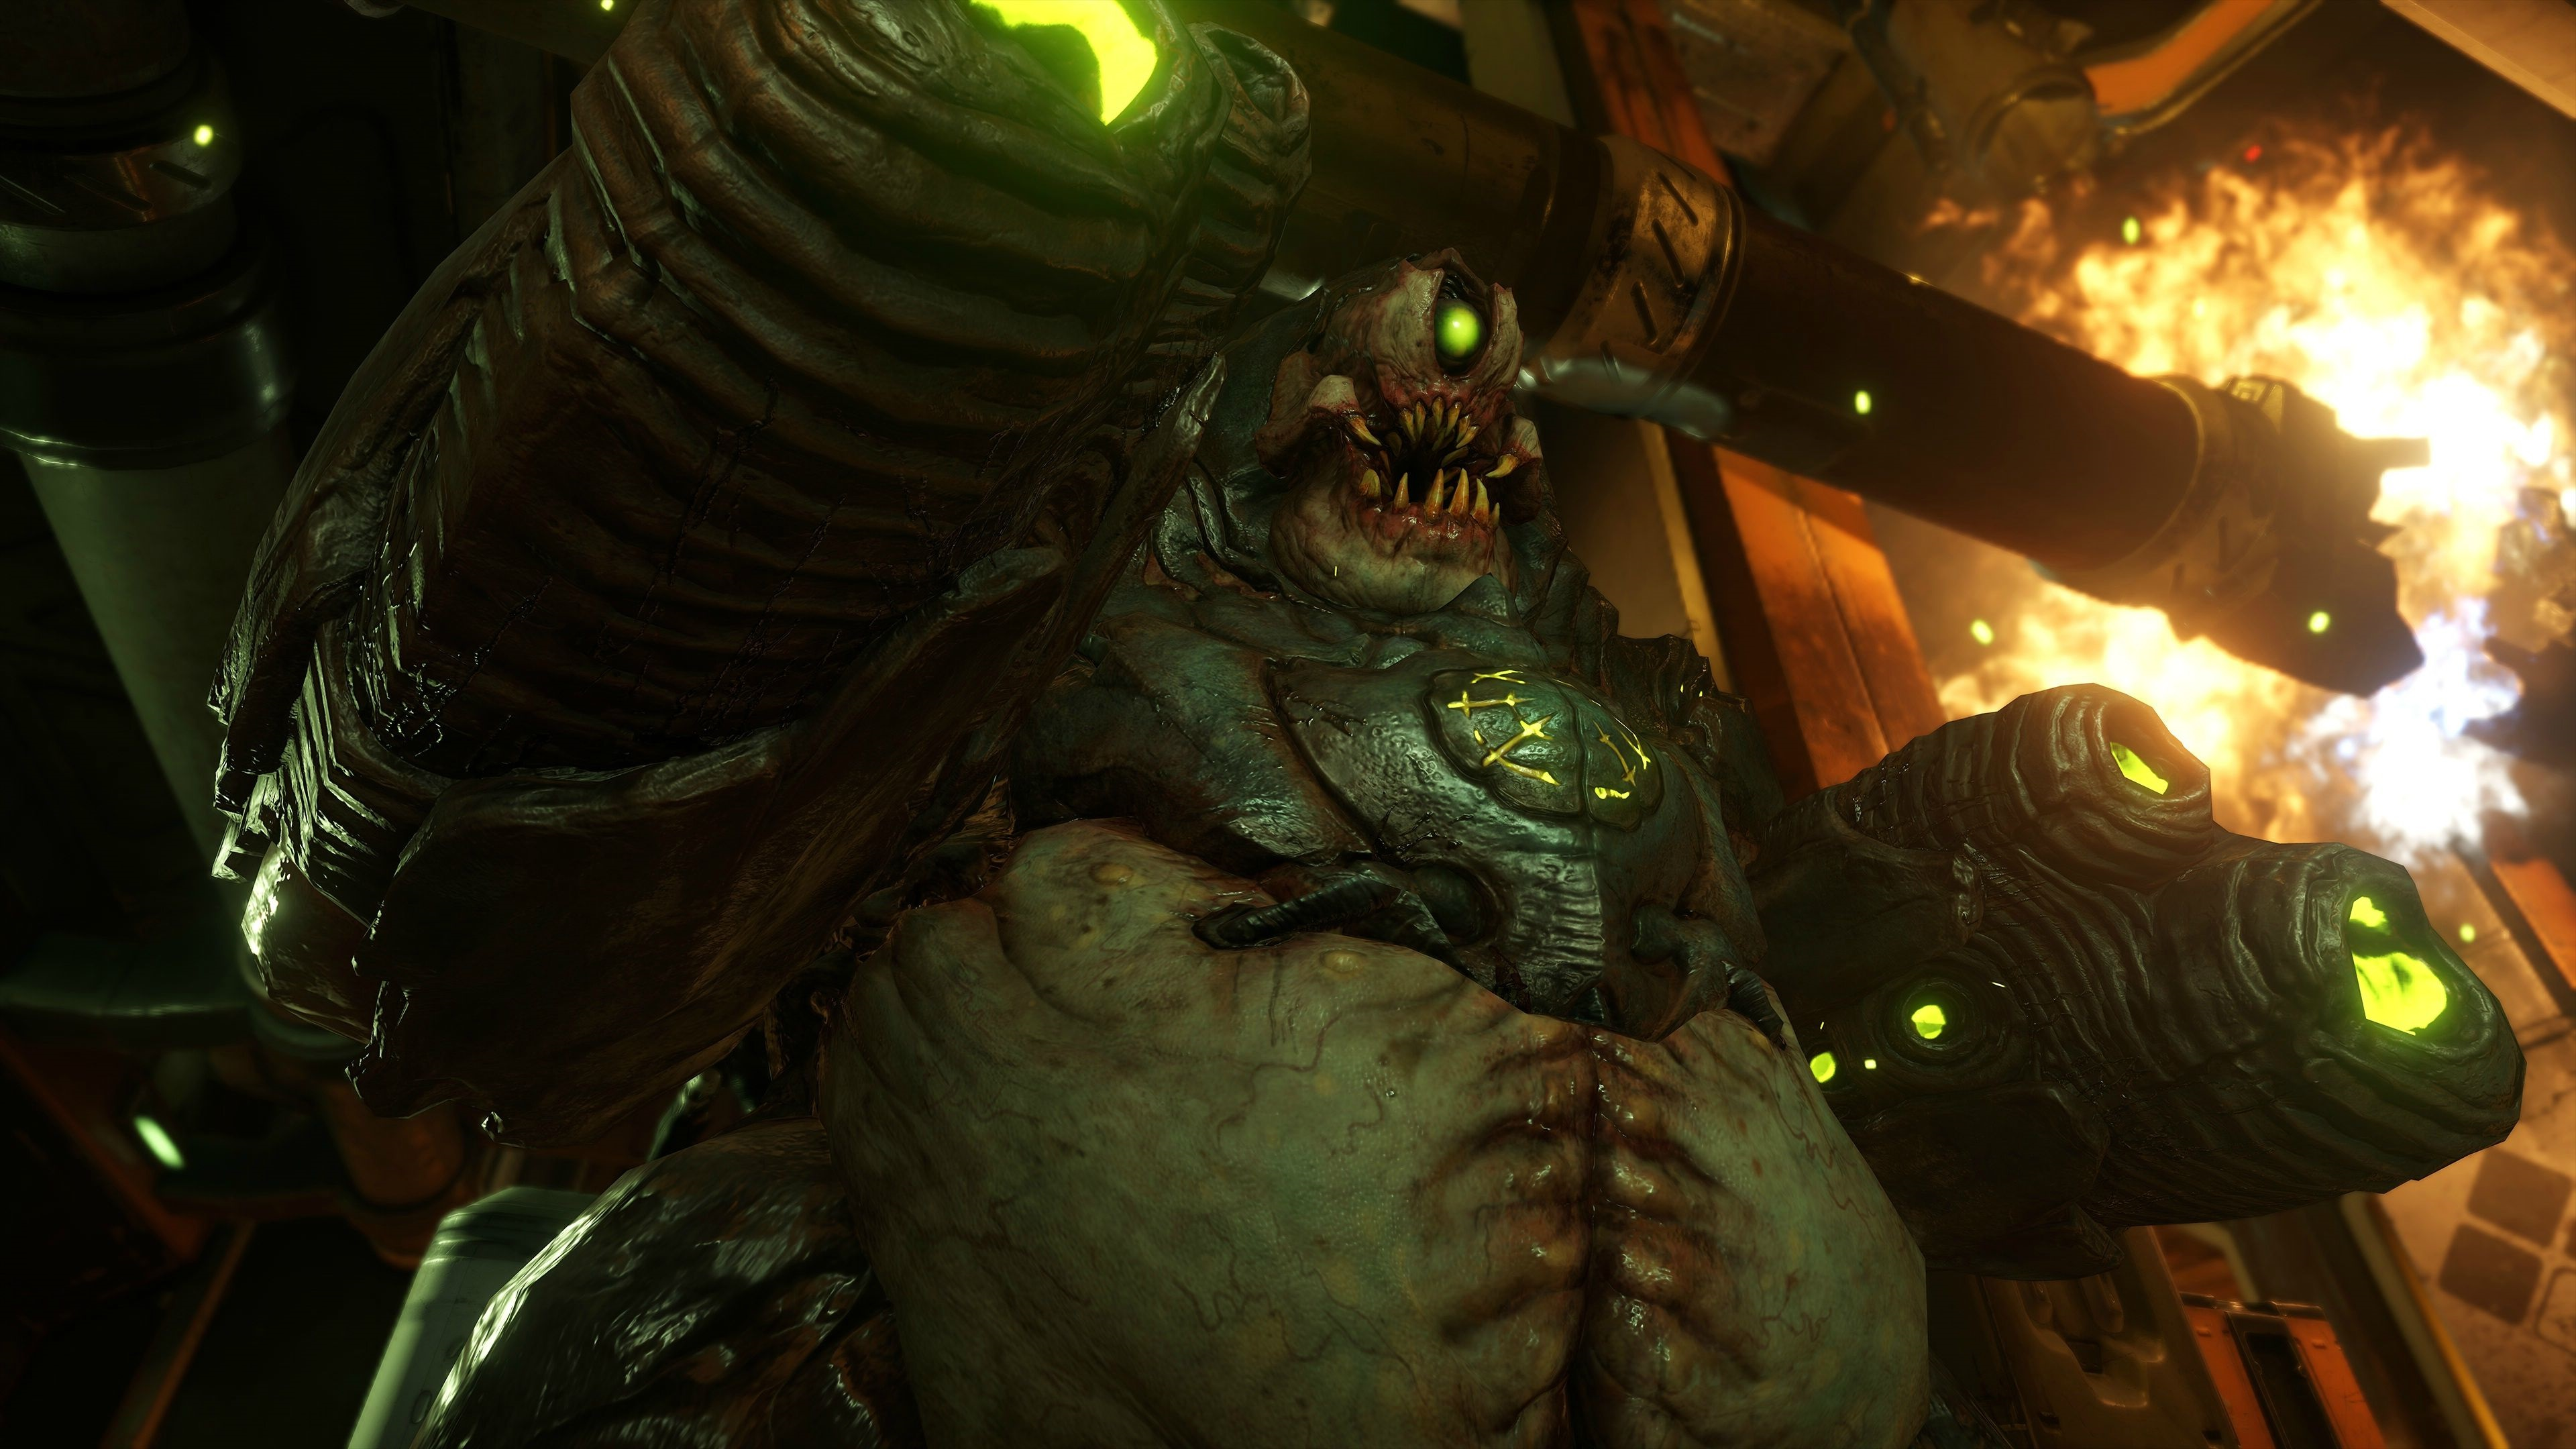 doom wallpaper 1366x768 - photo #29